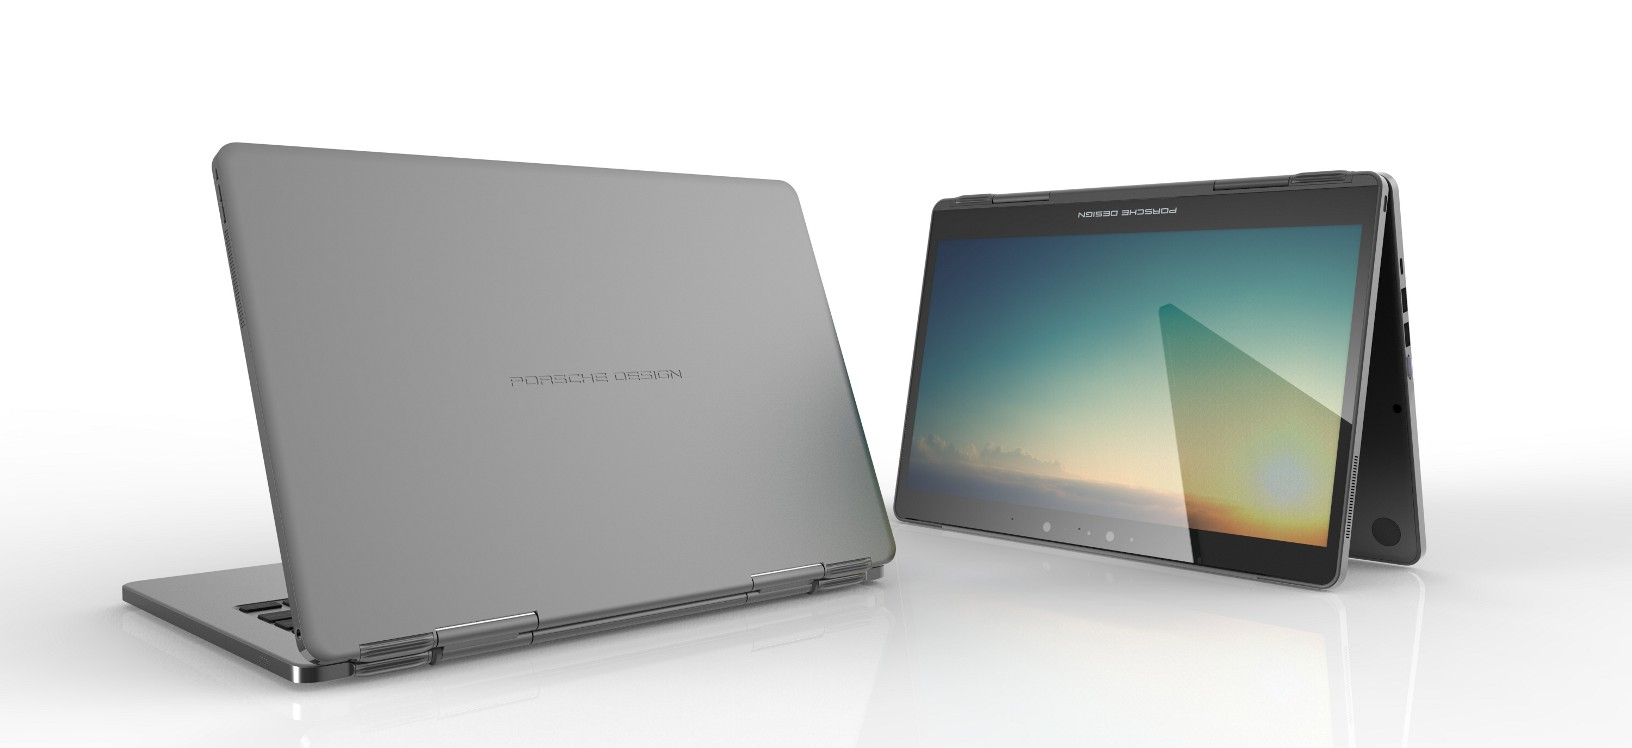 Porsche design Windows 2-in-1